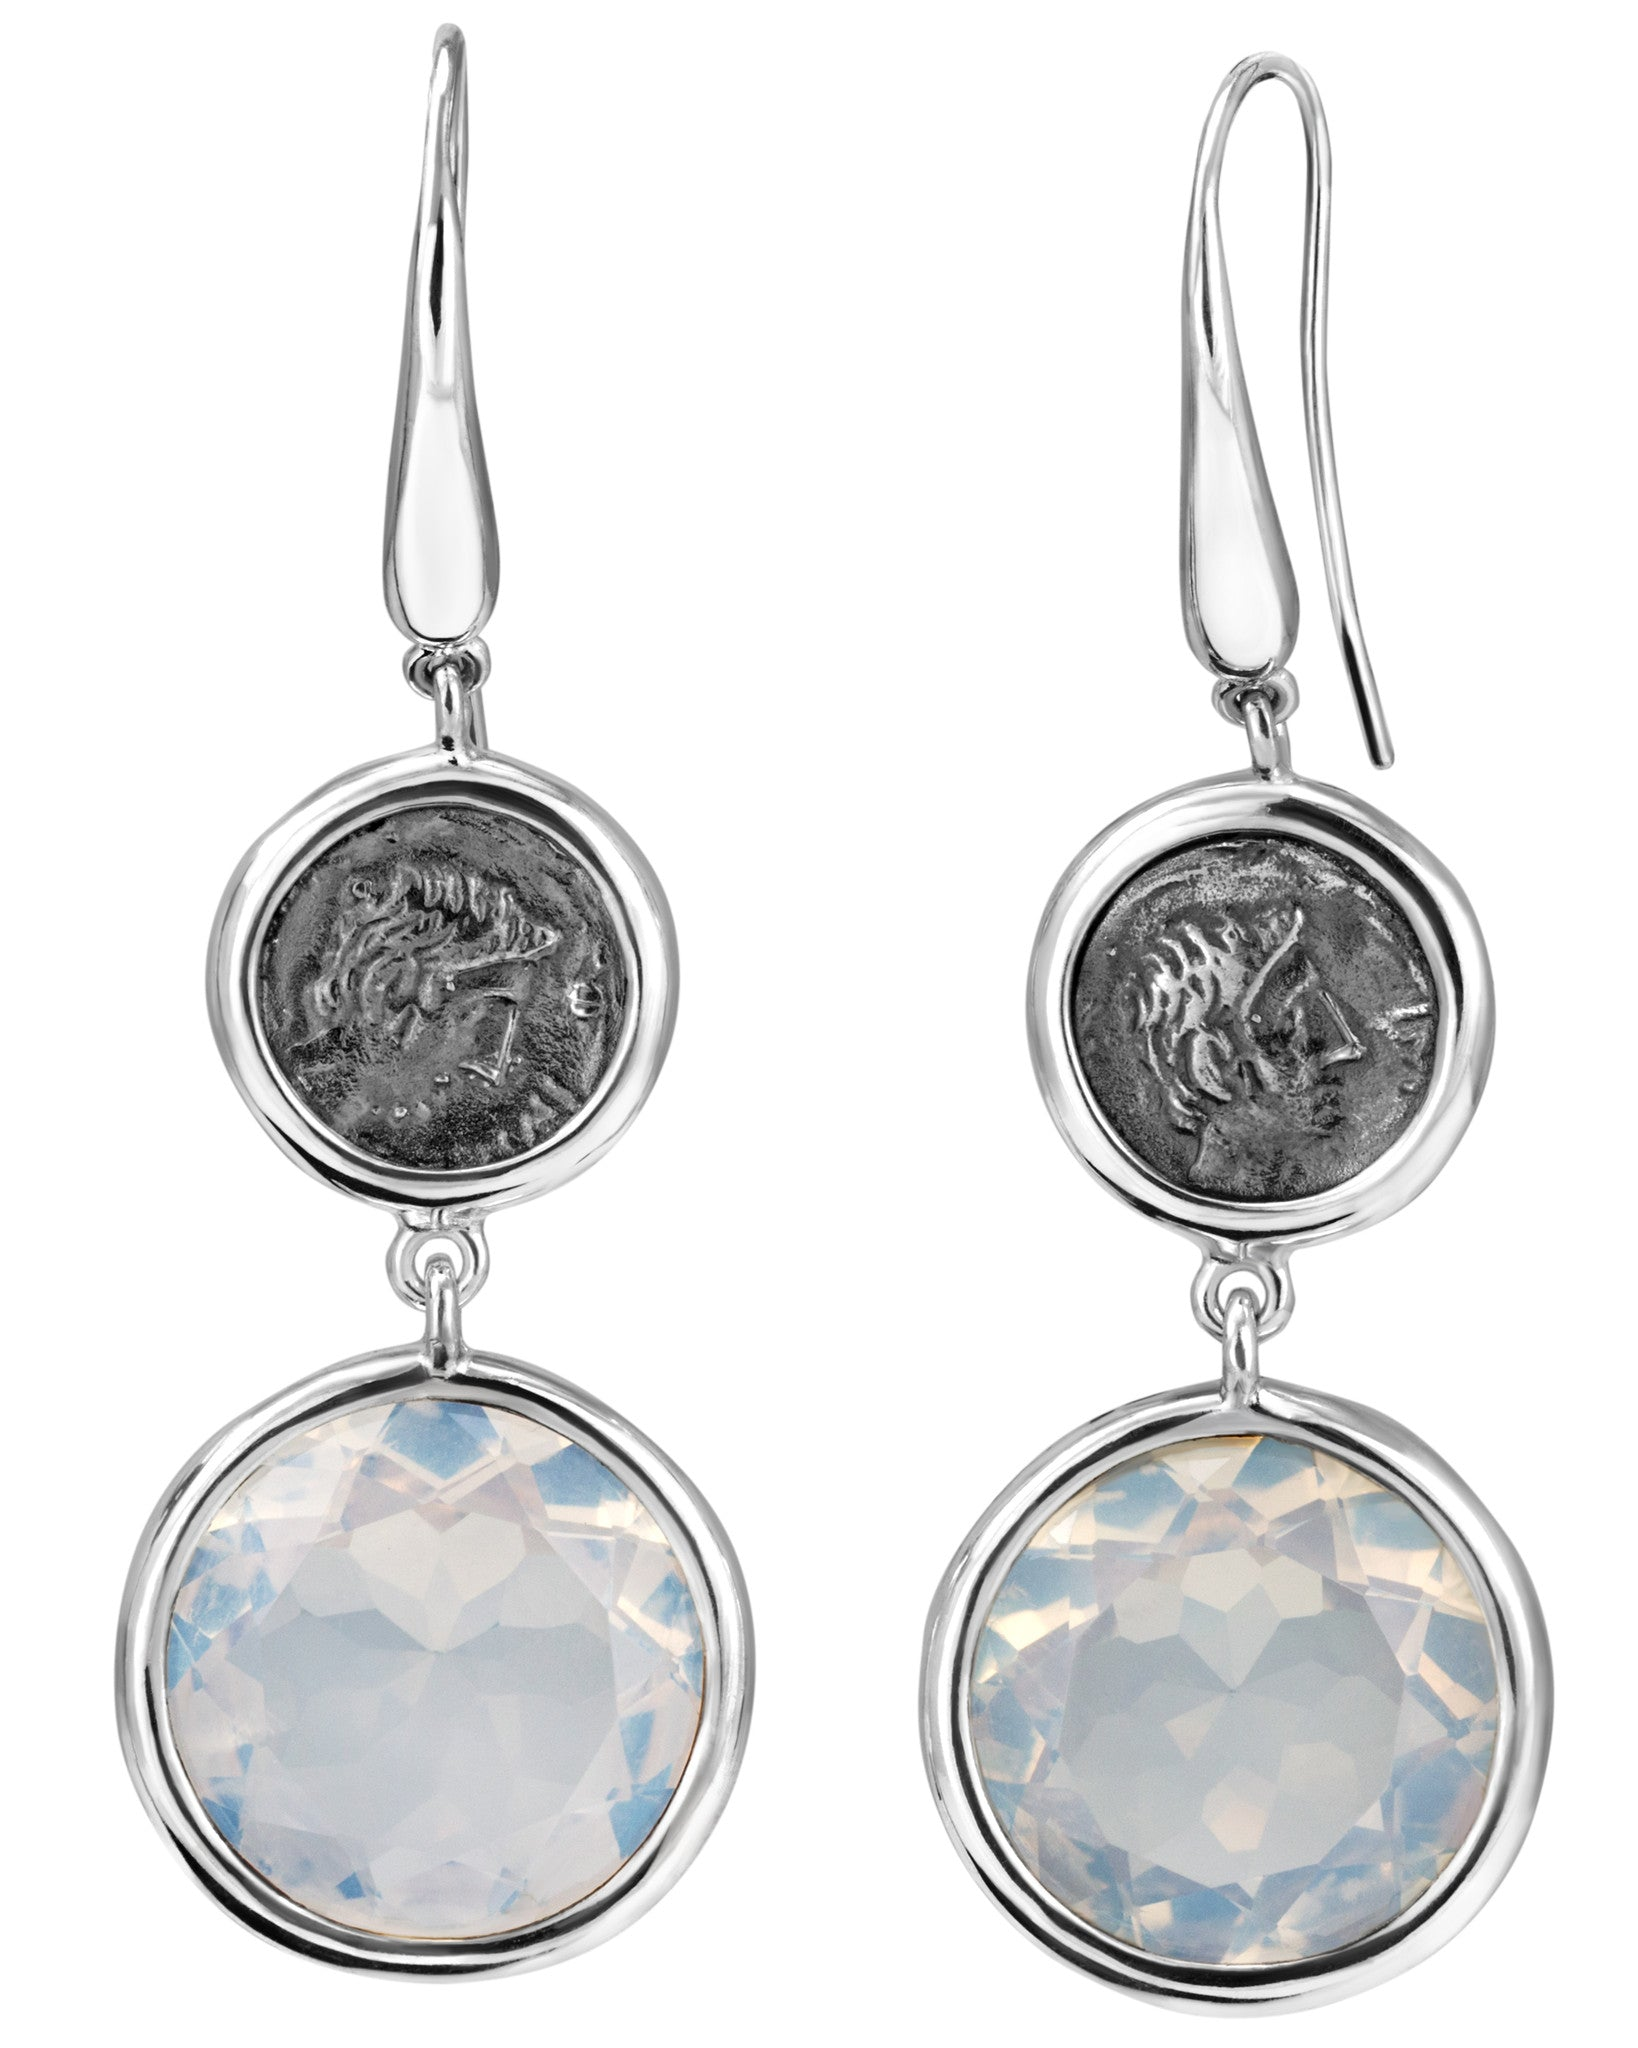 Legacy Vivace Sterling Silver Earrings w/ Small Antique Ottaviano Coins and Moonstone (25.50 ct. tw.)